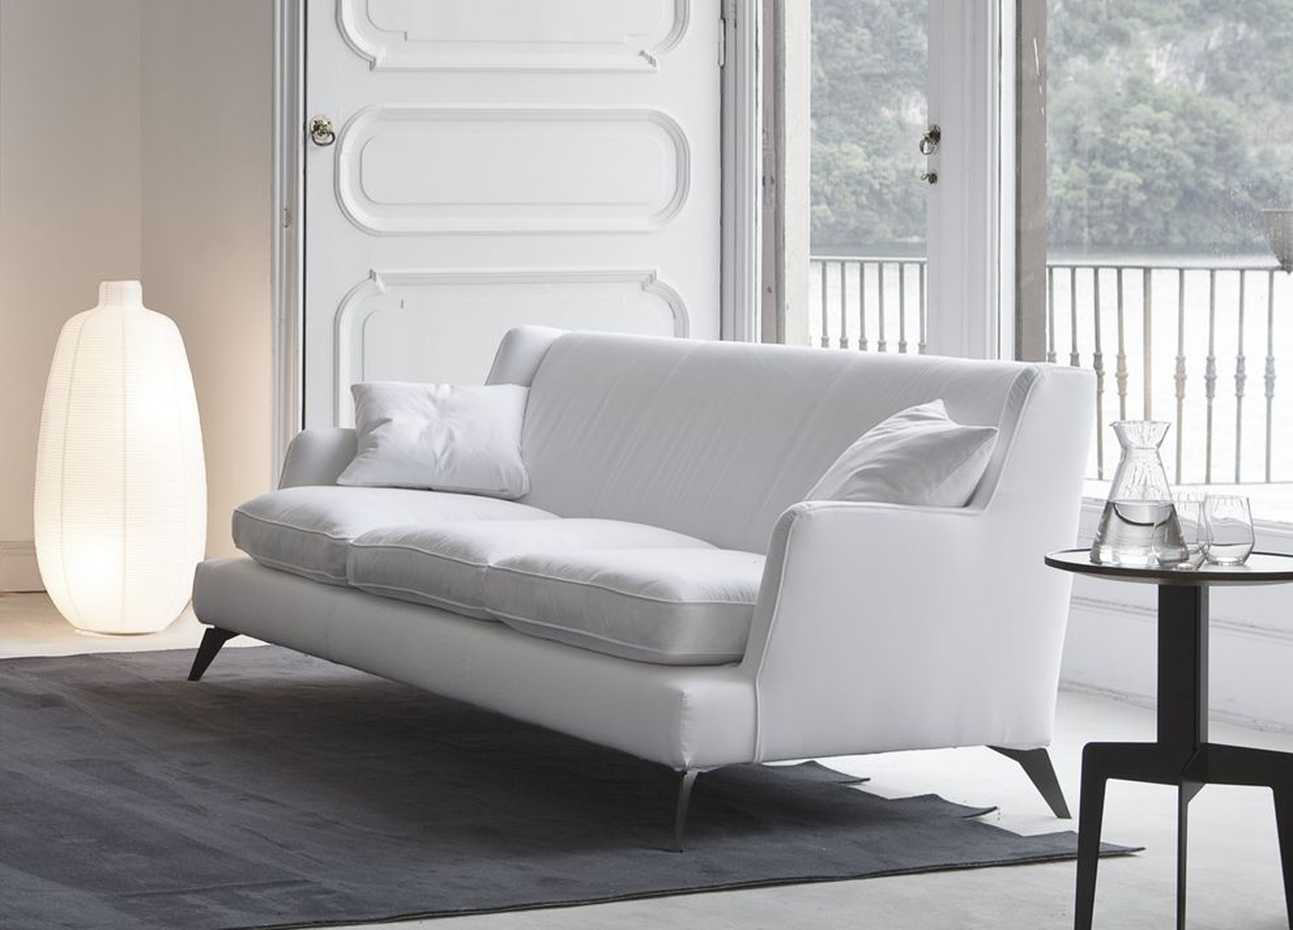 Class by Vibieffe product image 2